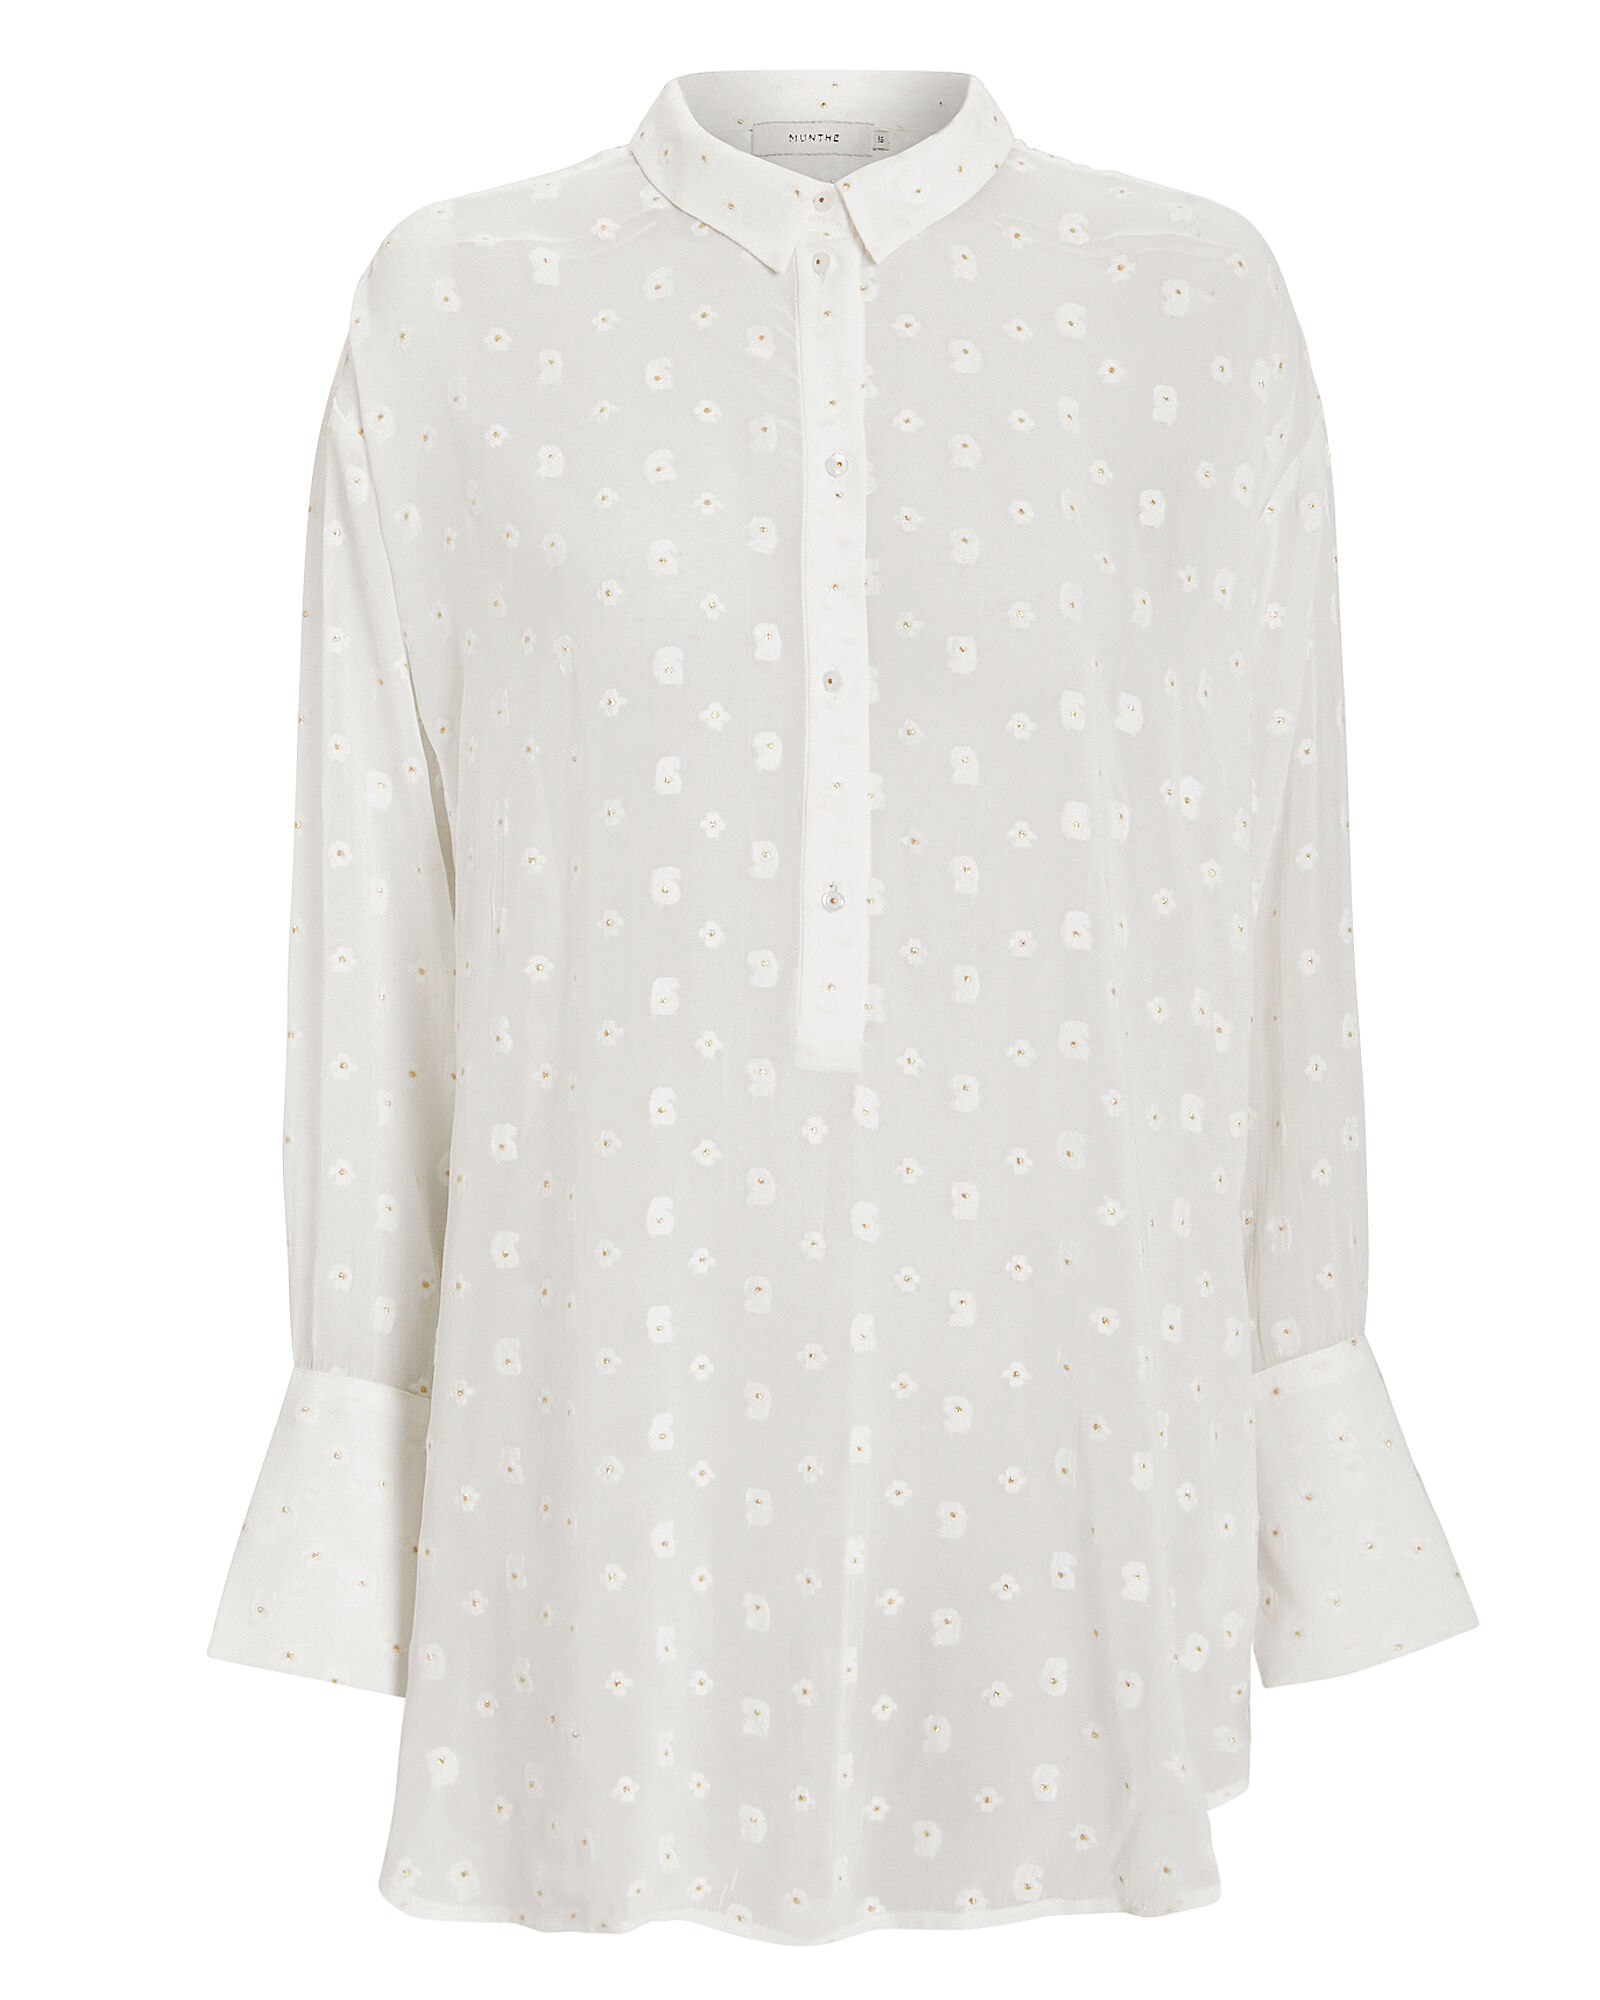 Affair Sheer Blouse, IVORY, hi-res